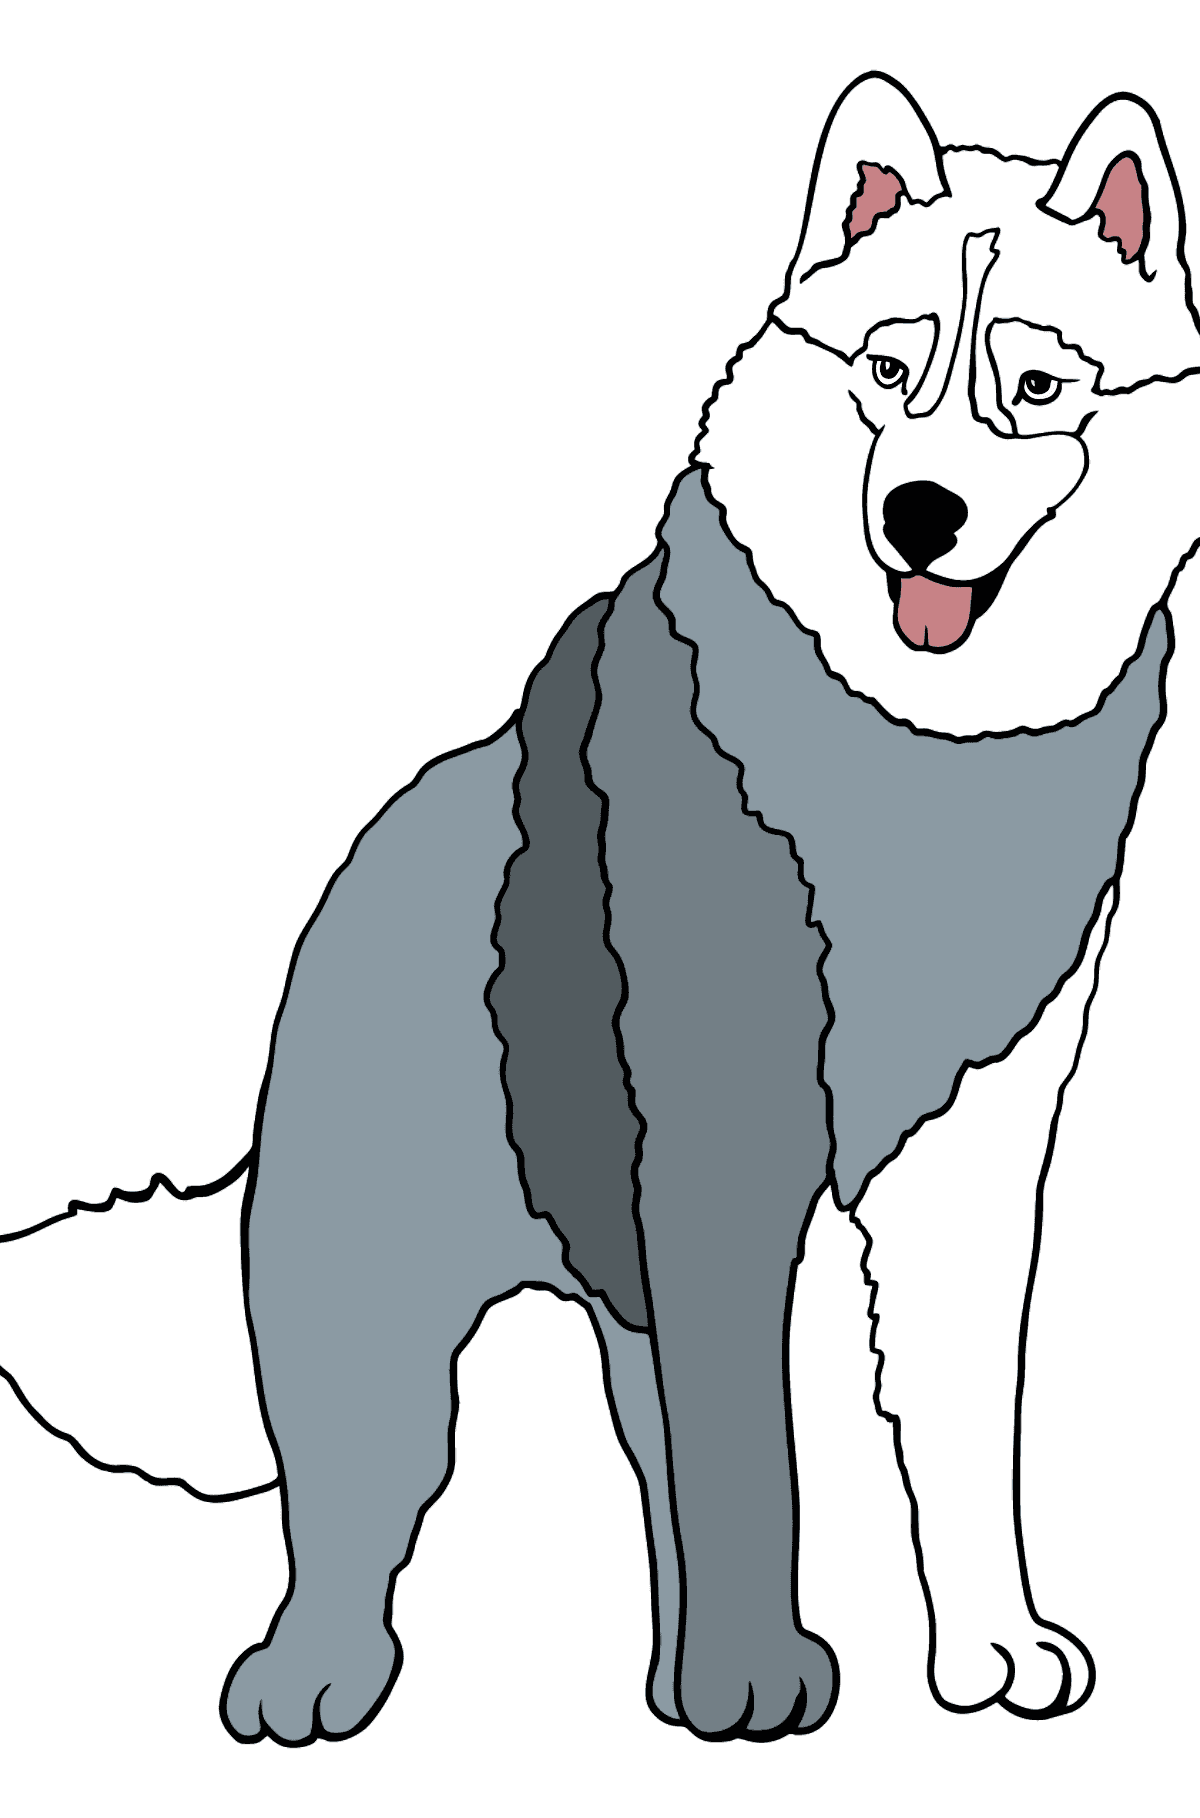 Husky coloring page for kids